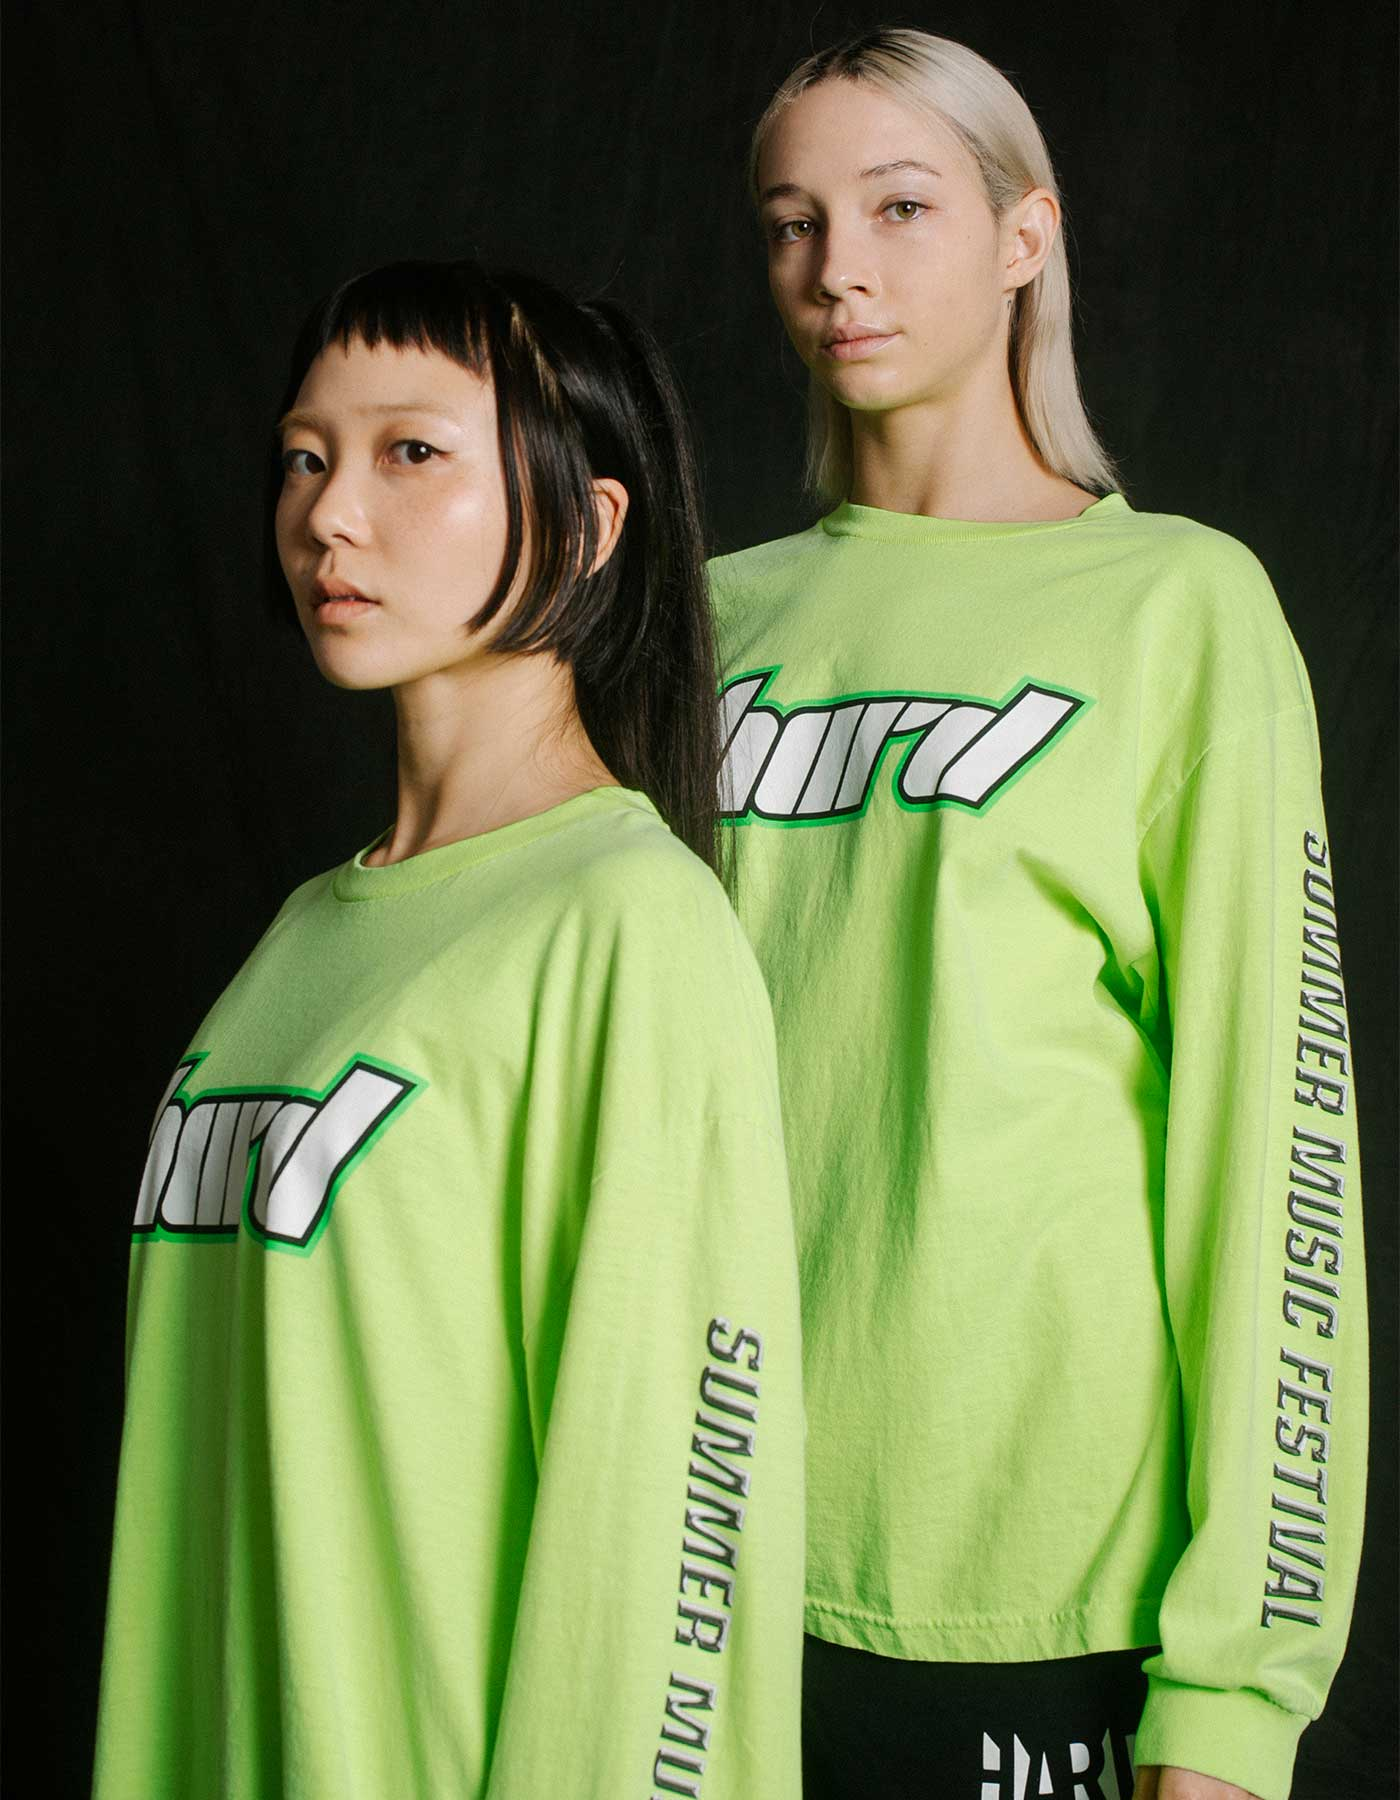 HARD Summer 2019 Midnight L/S Tee